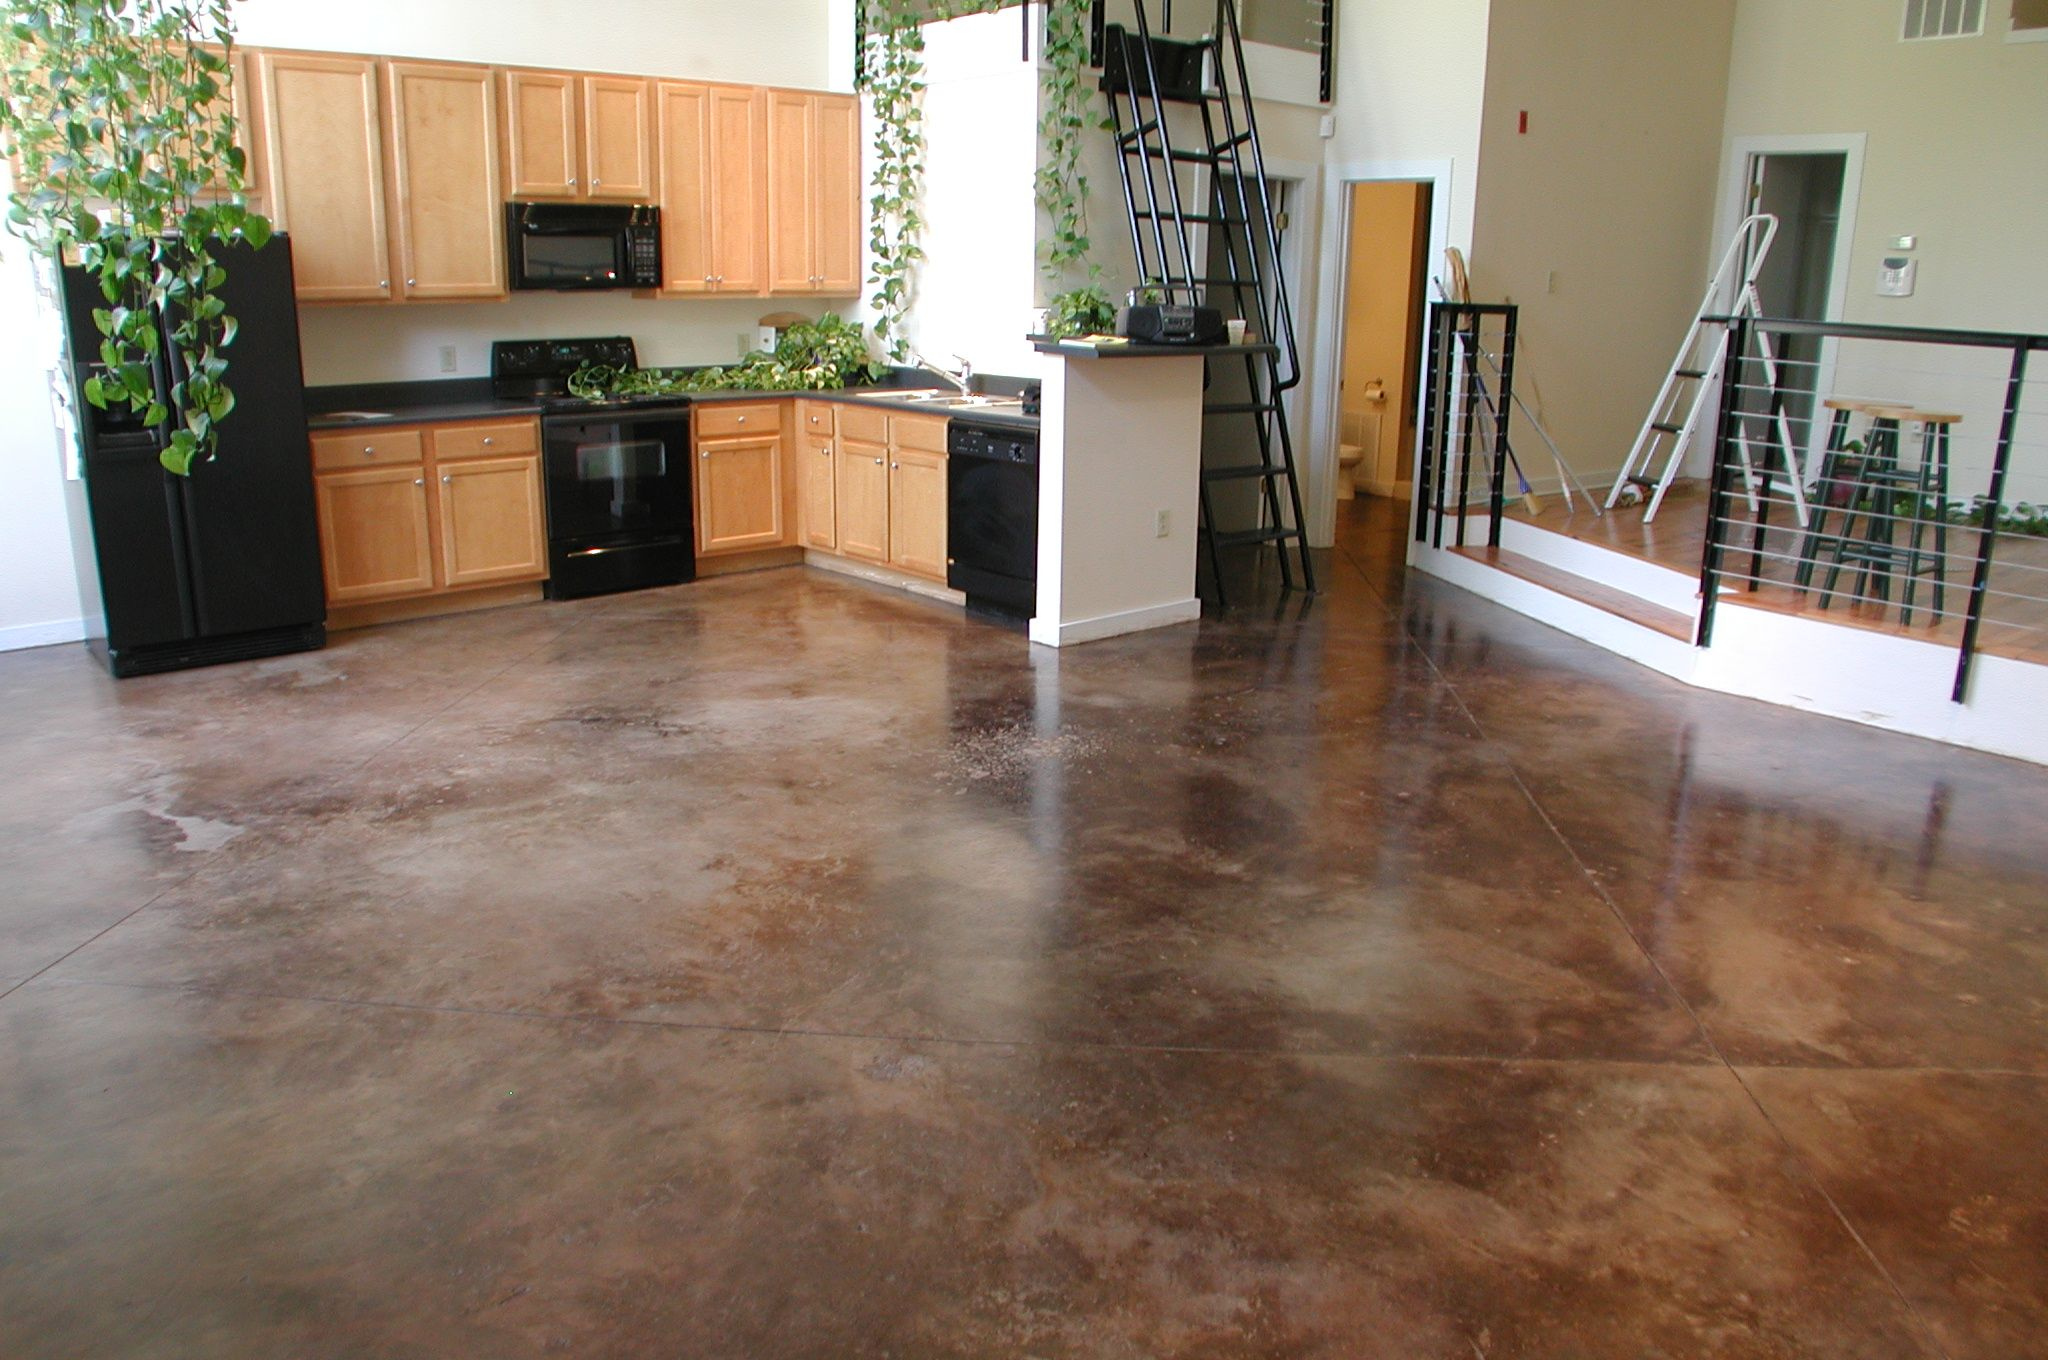 How To Stain An Interior Concrete Floor Ehow Concrete Floors Diy Concrete Stained Floors Painted Concrete Floors